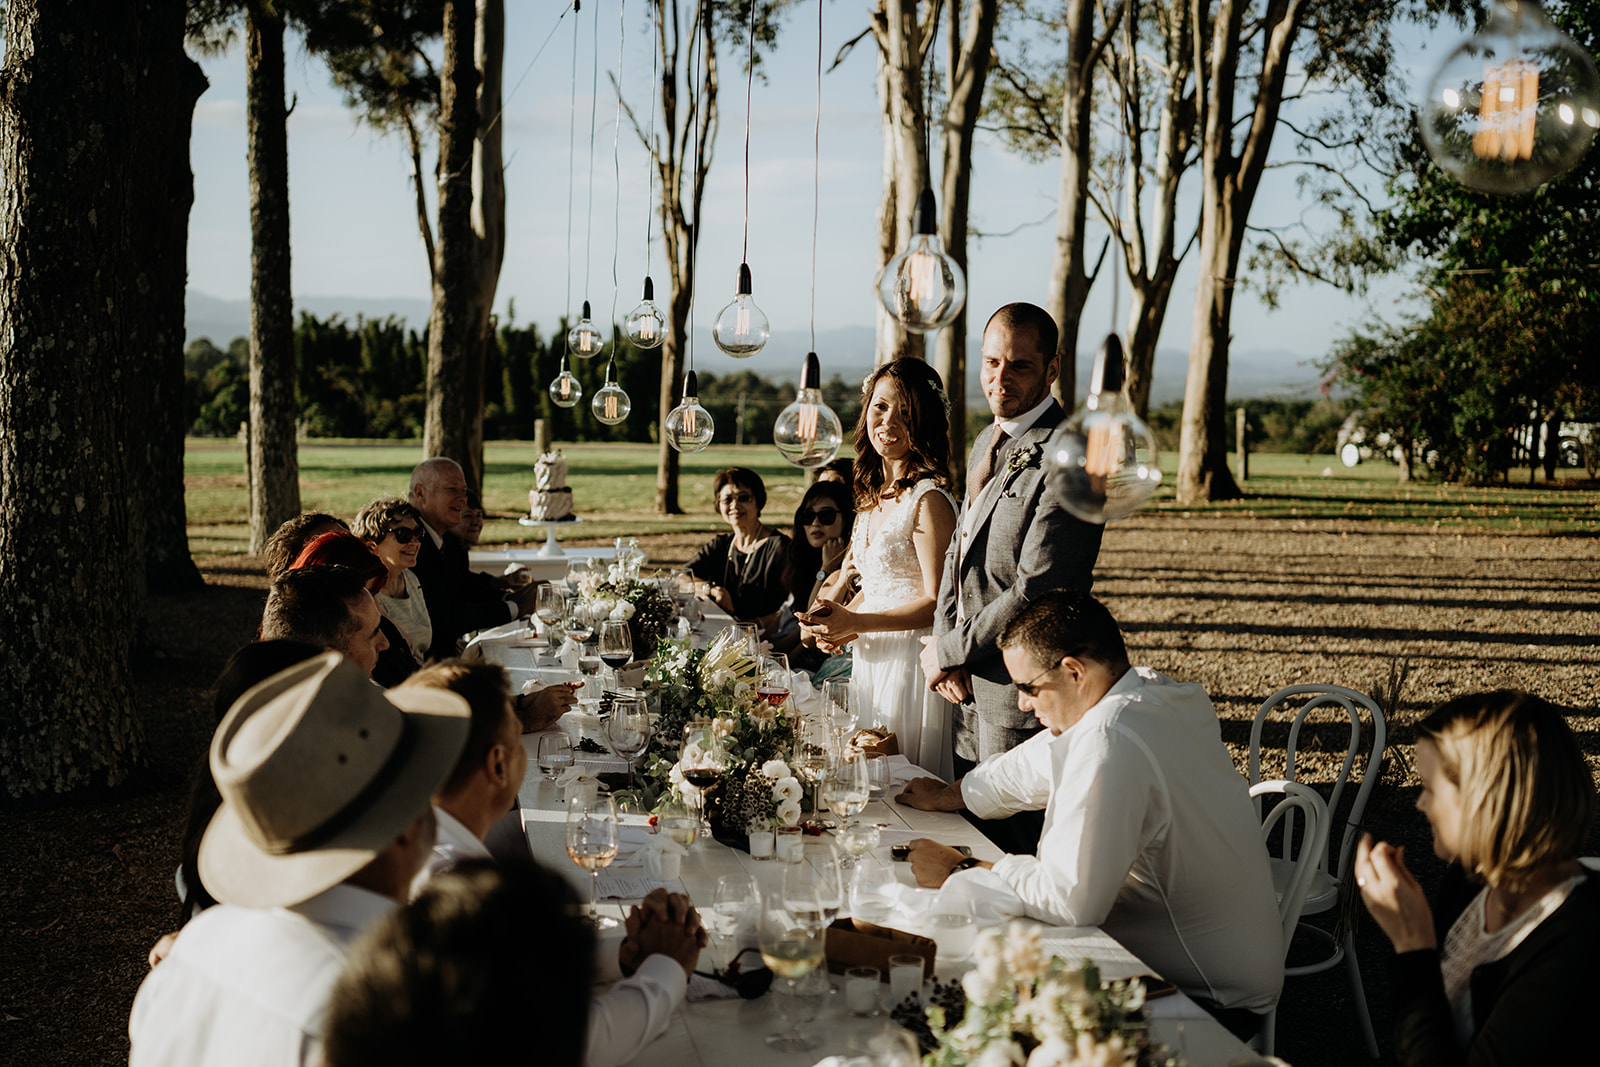 Wedding reception table with guests / photography